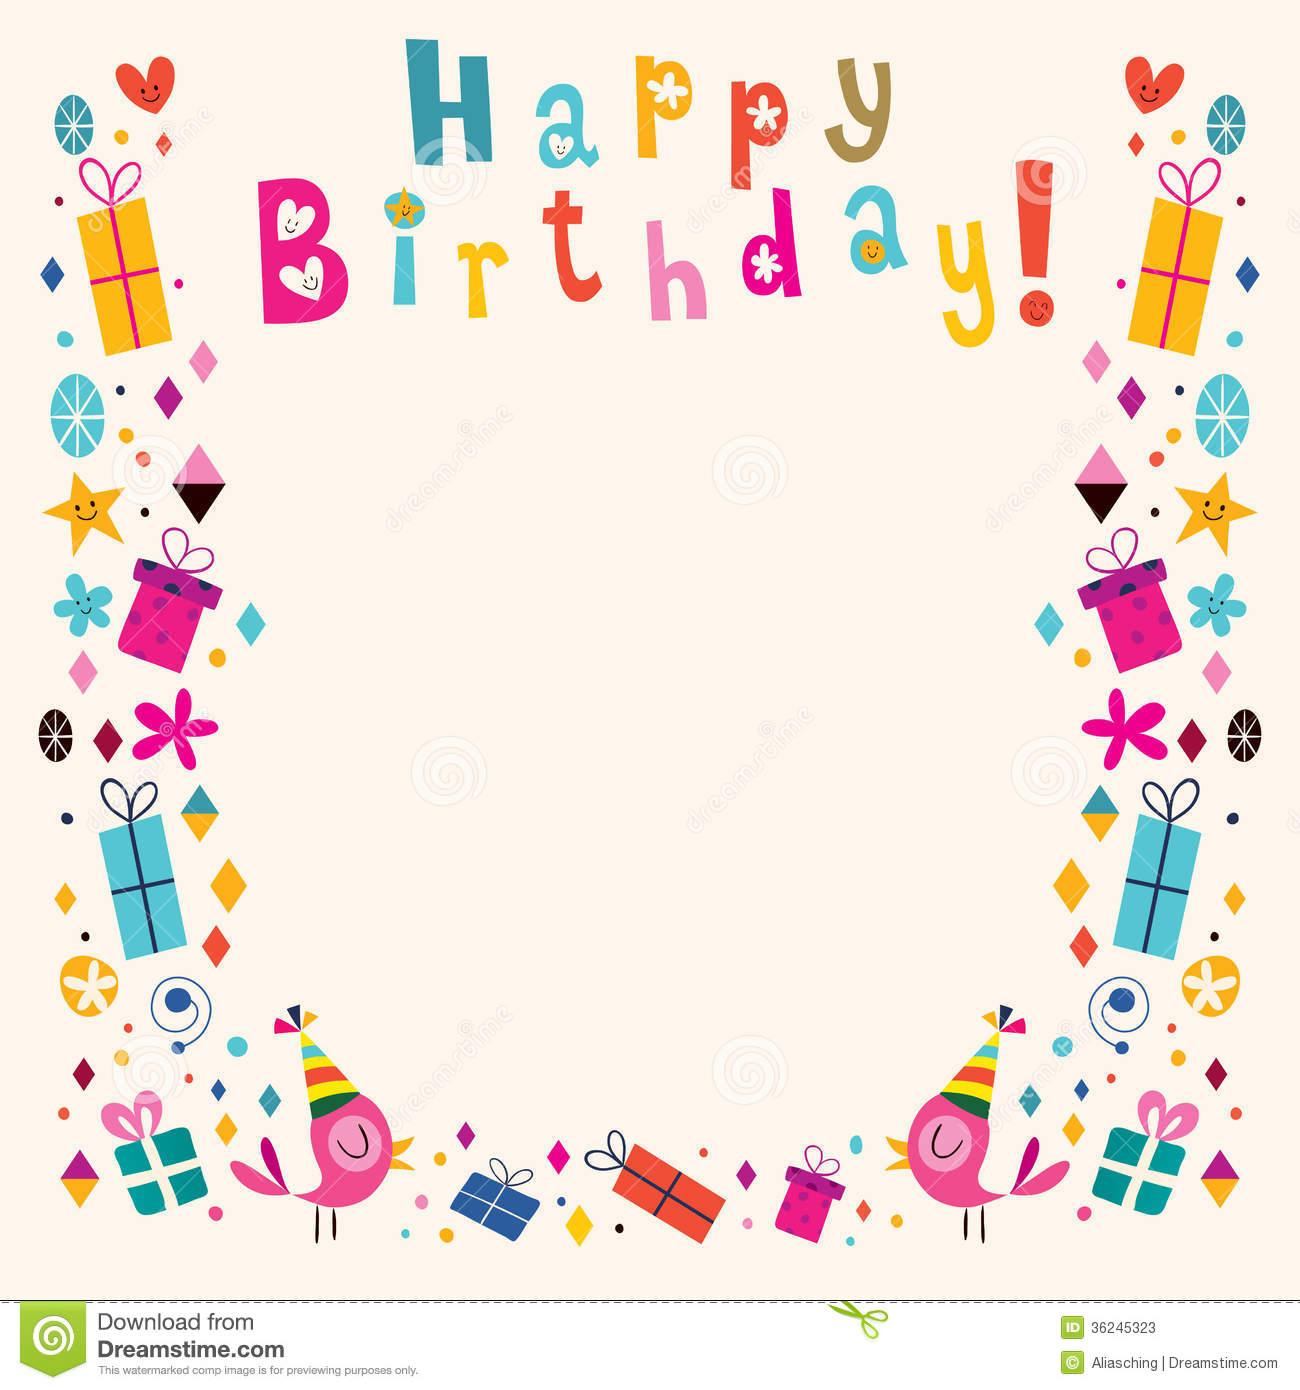 Birthday clipart picture frame. Happy